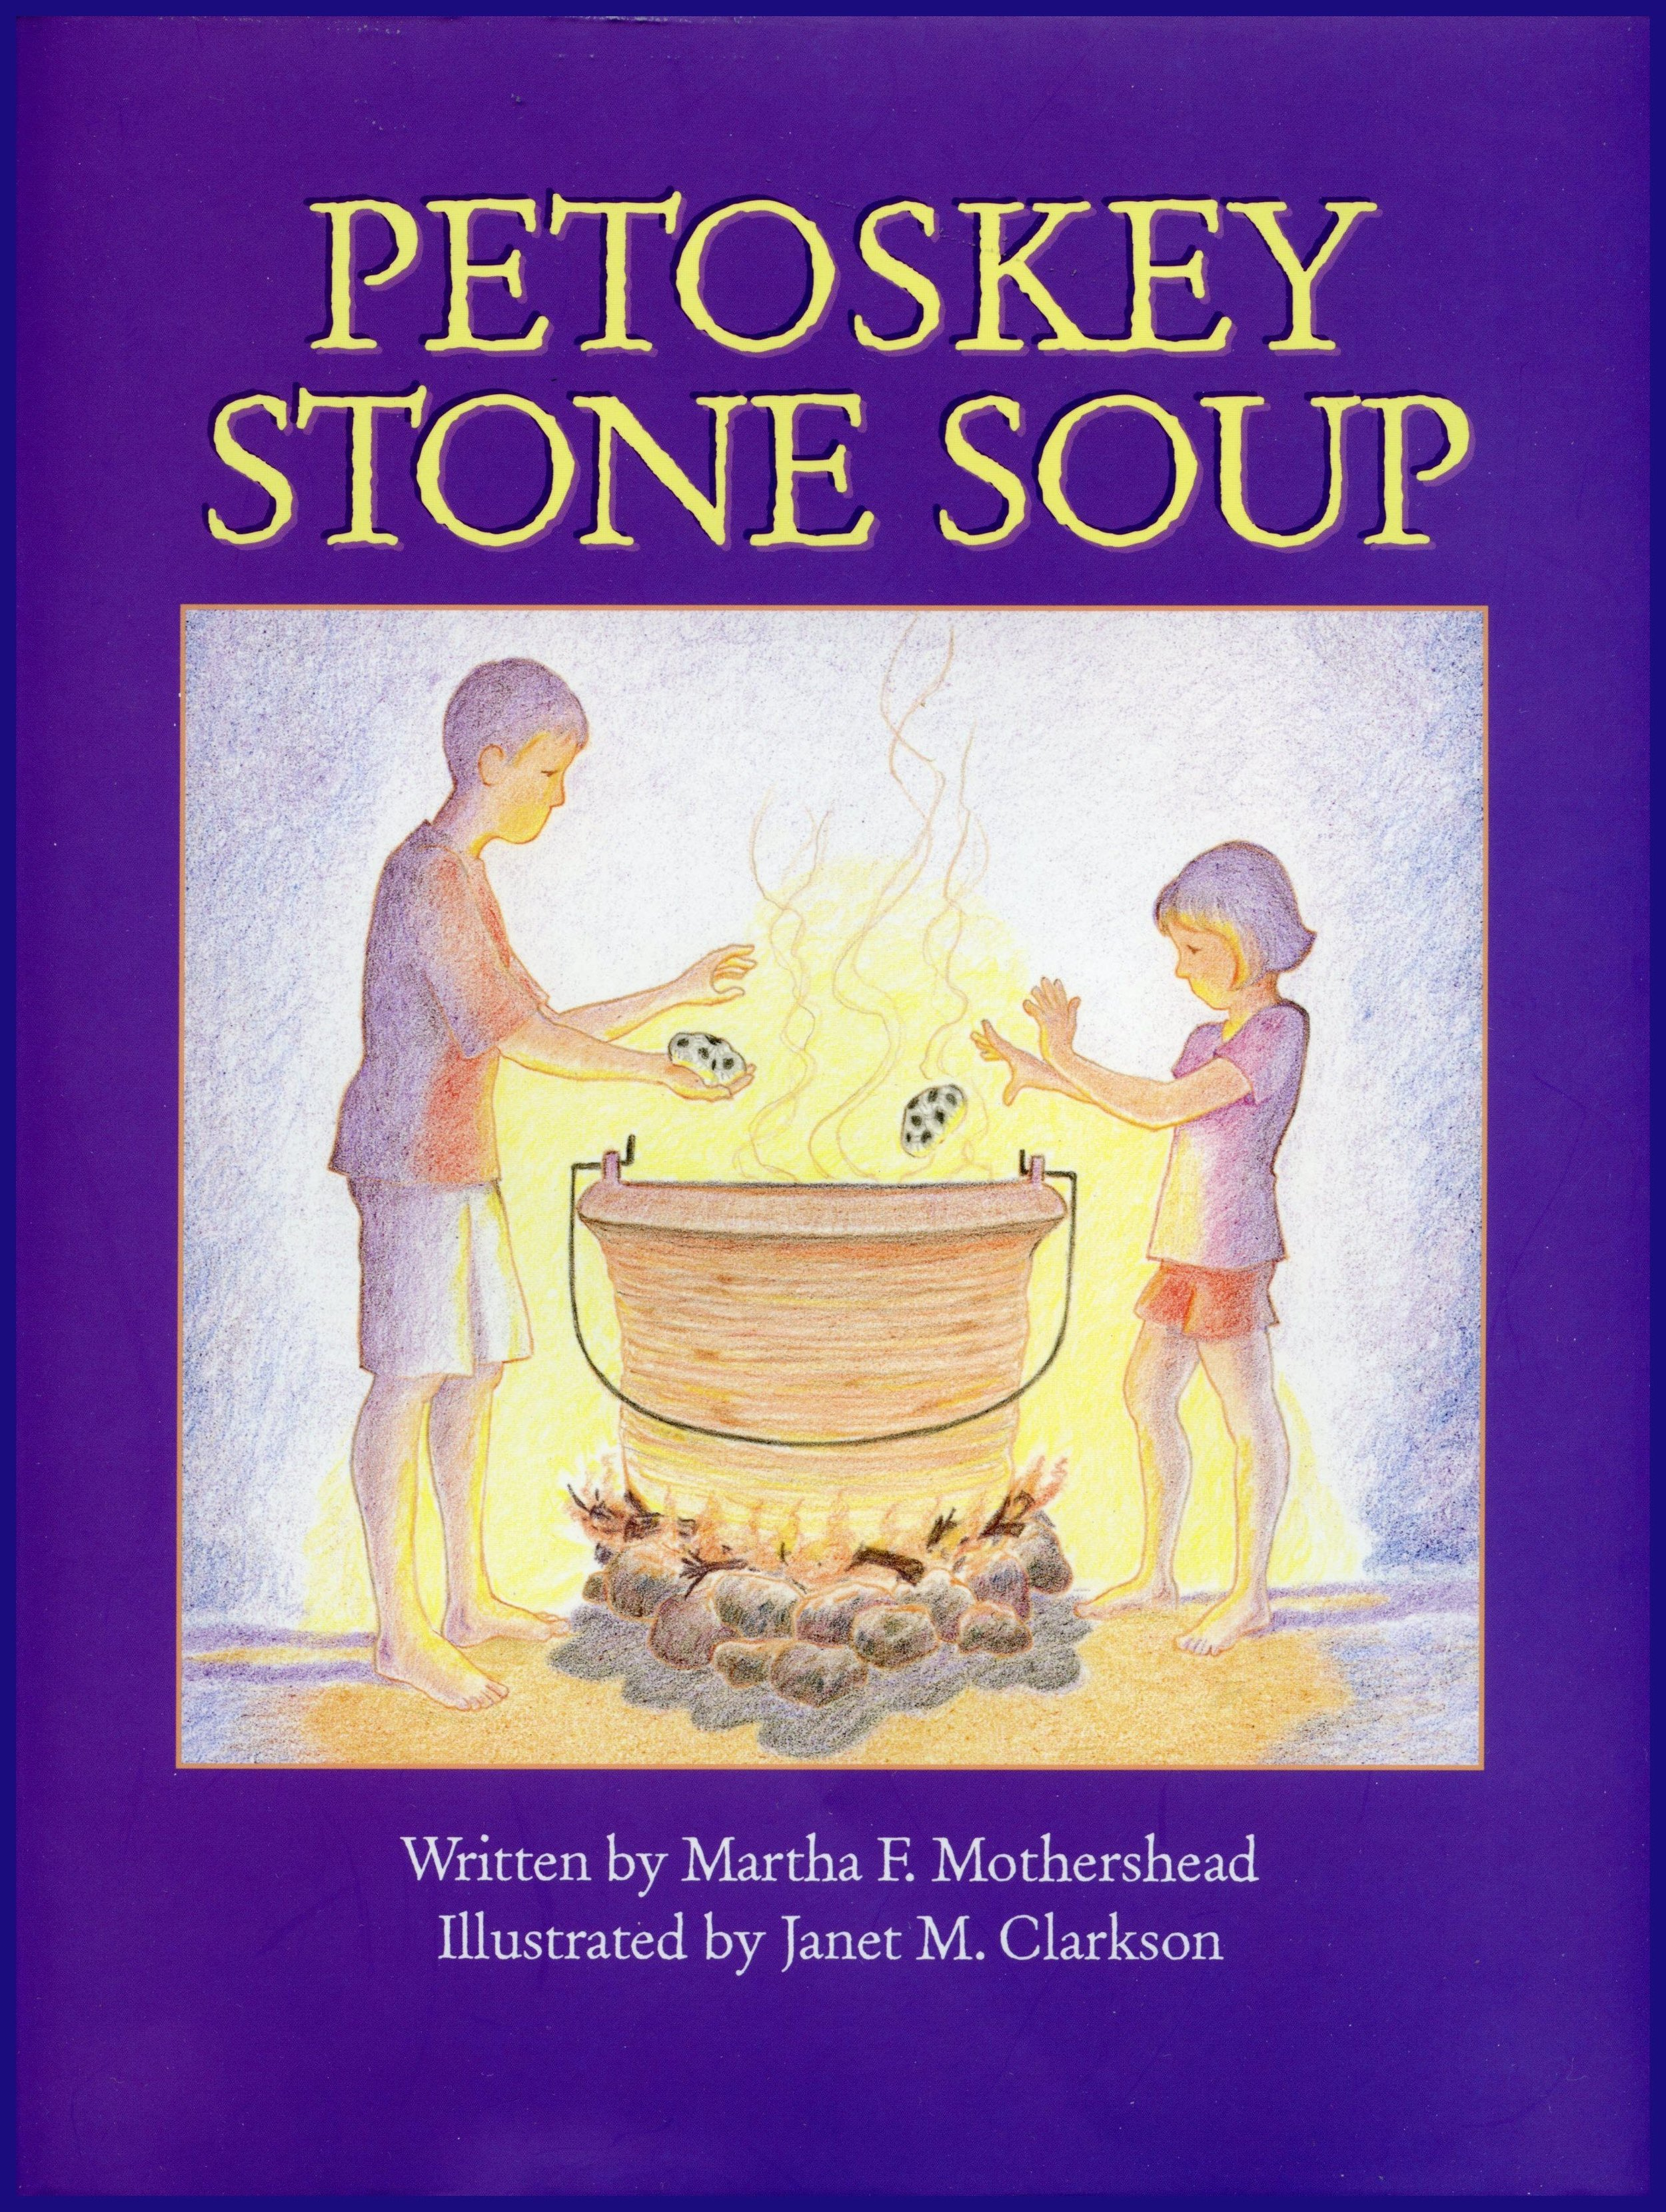 Stone Soup goes here